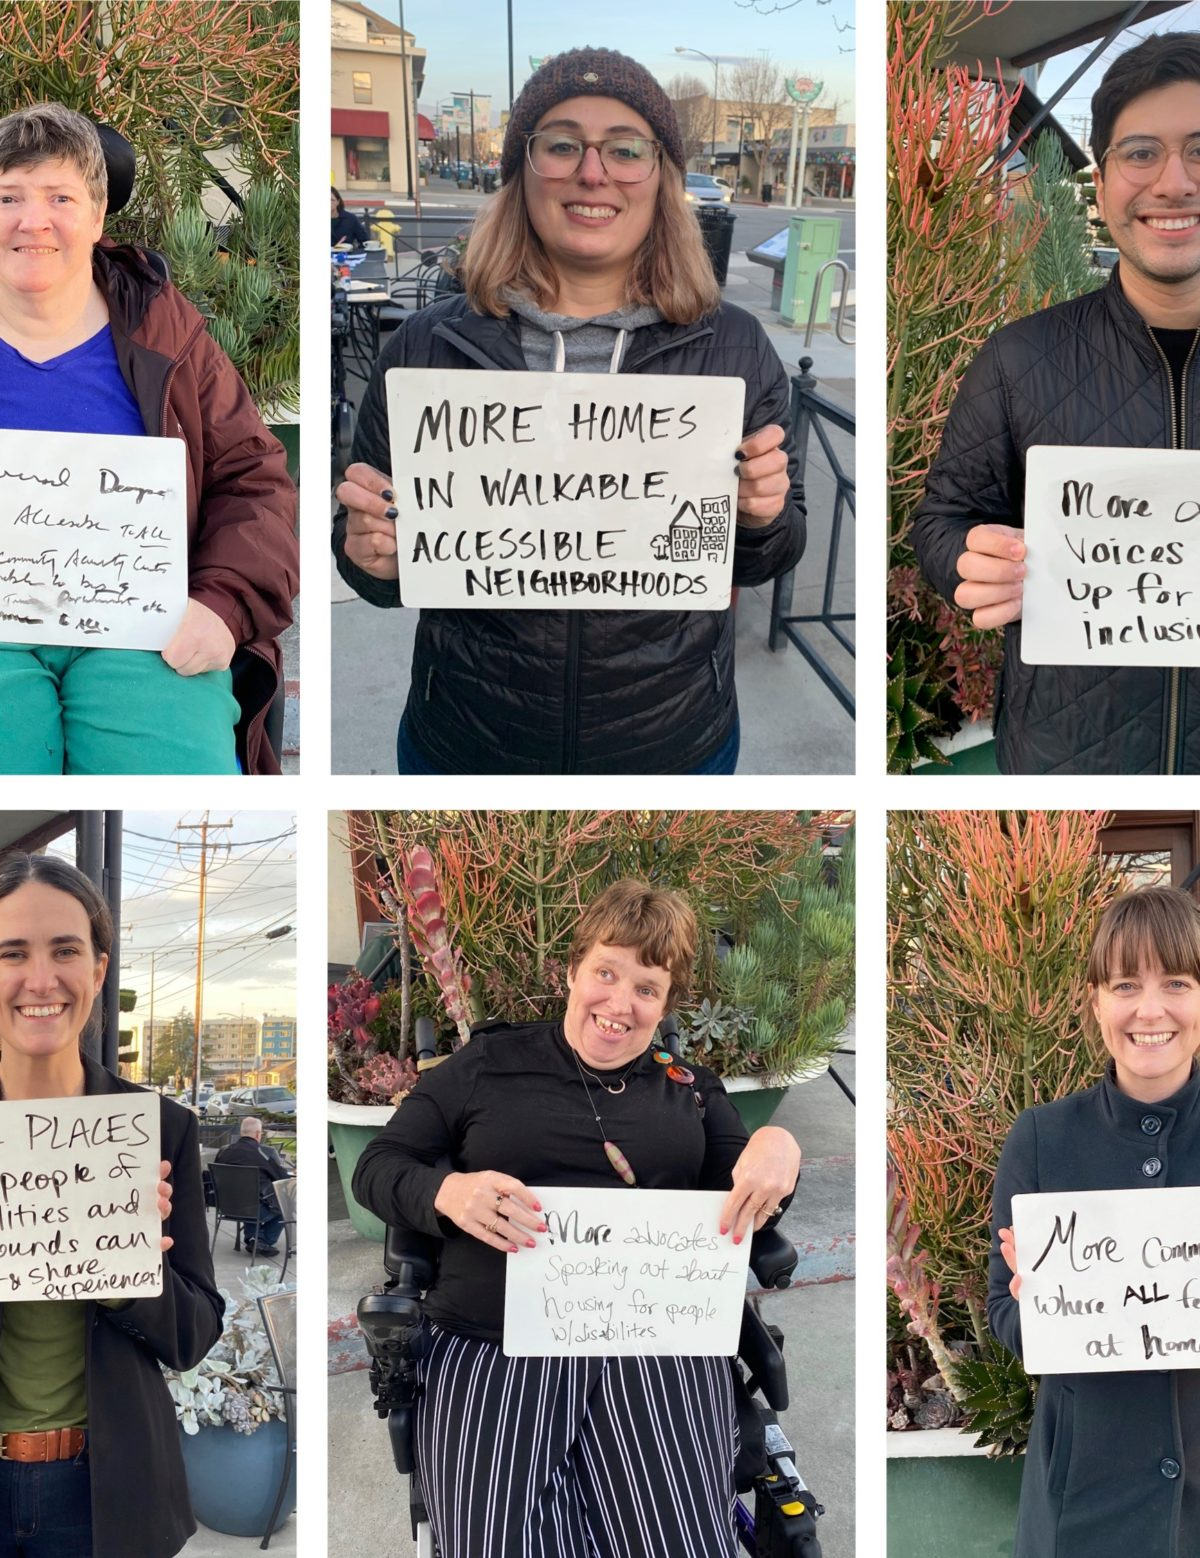 Images of 10 people with signs that say what they want more of in their community.